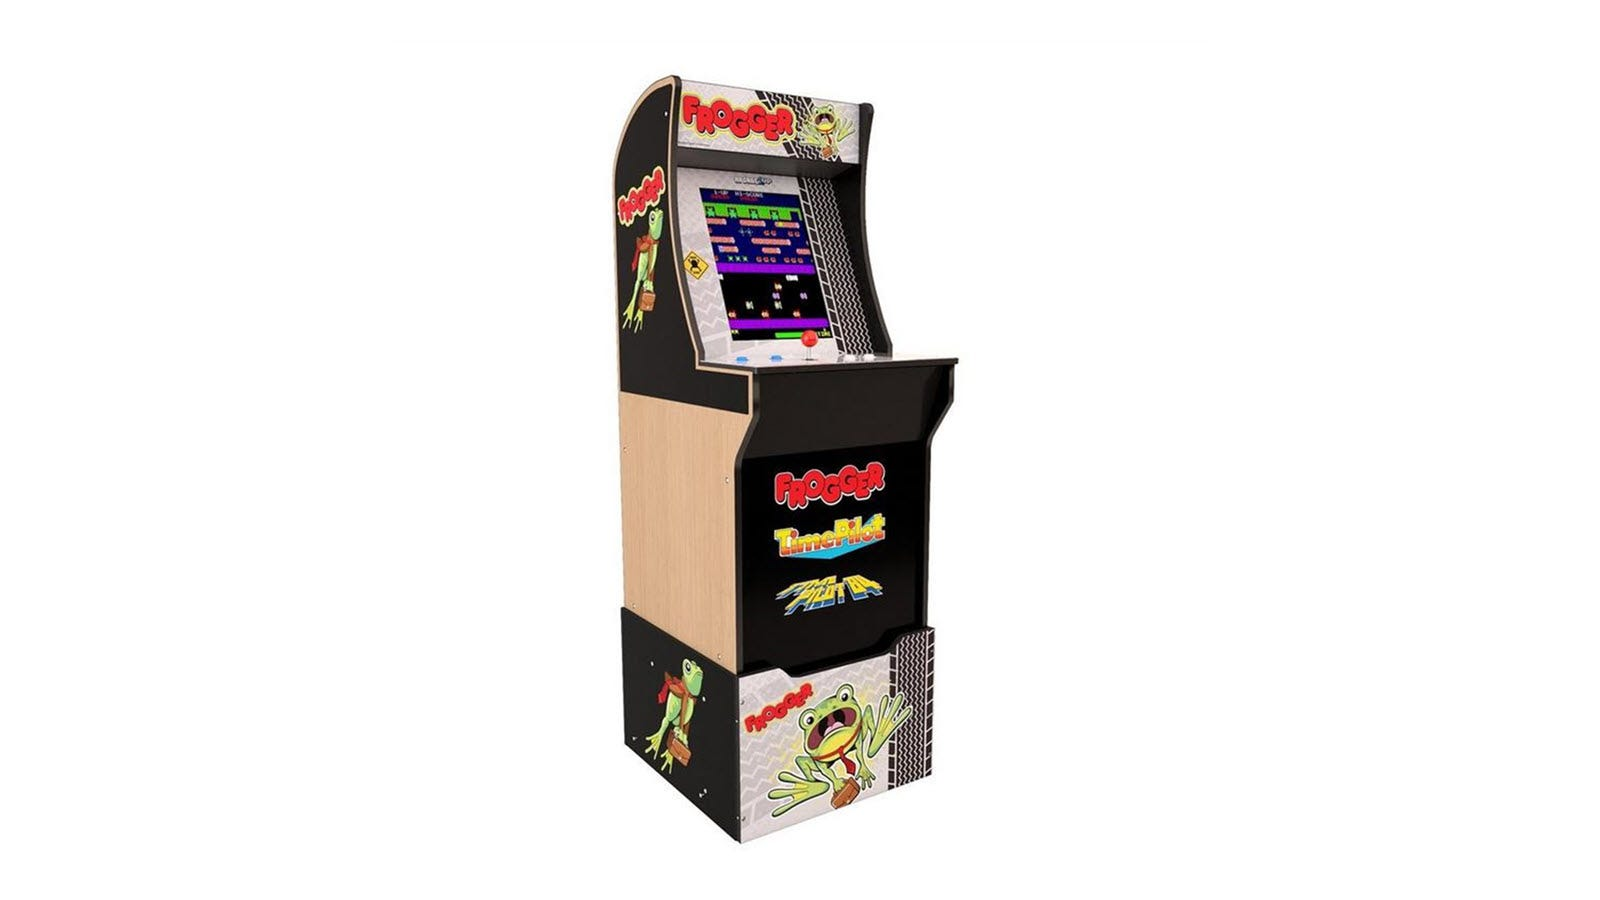 A Frogger Arcade1Up cabinet with custom riser and one joystick.